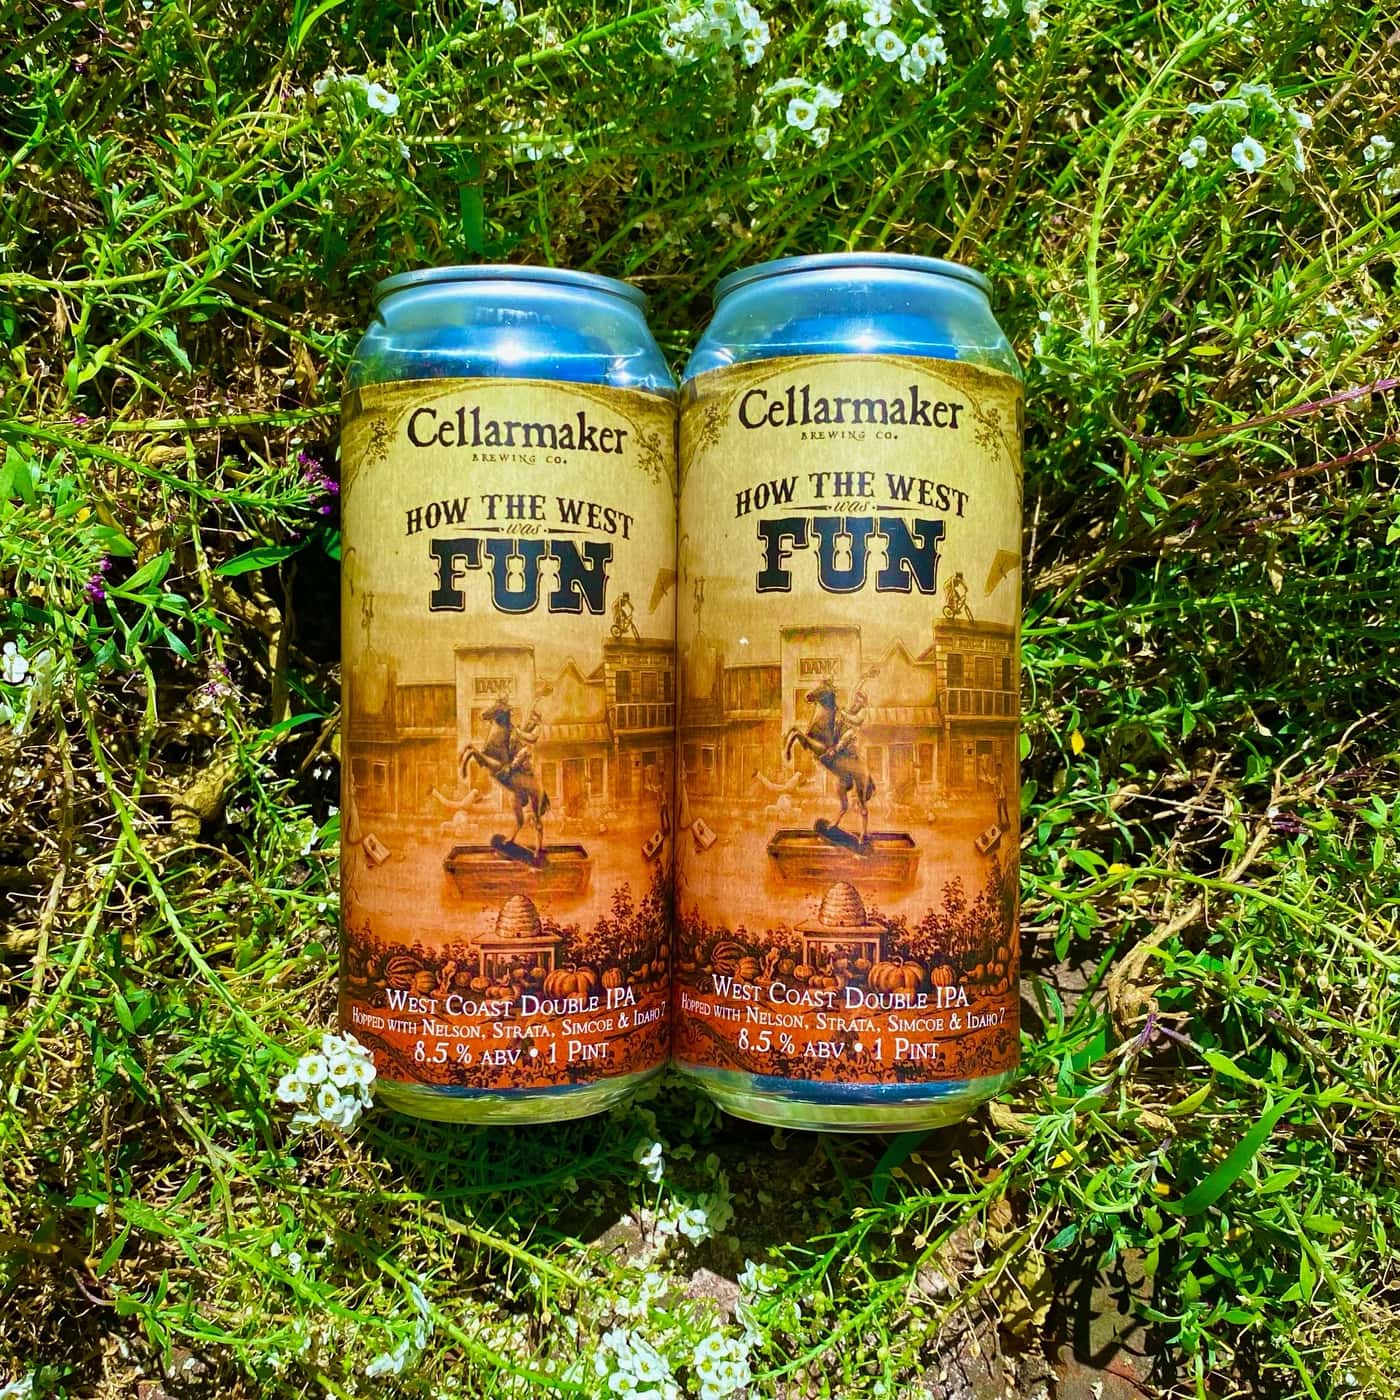 12 CANS How The West Was Fun DIPA – Shipping Out Tuesday 6/22 For Next Day Delivery*